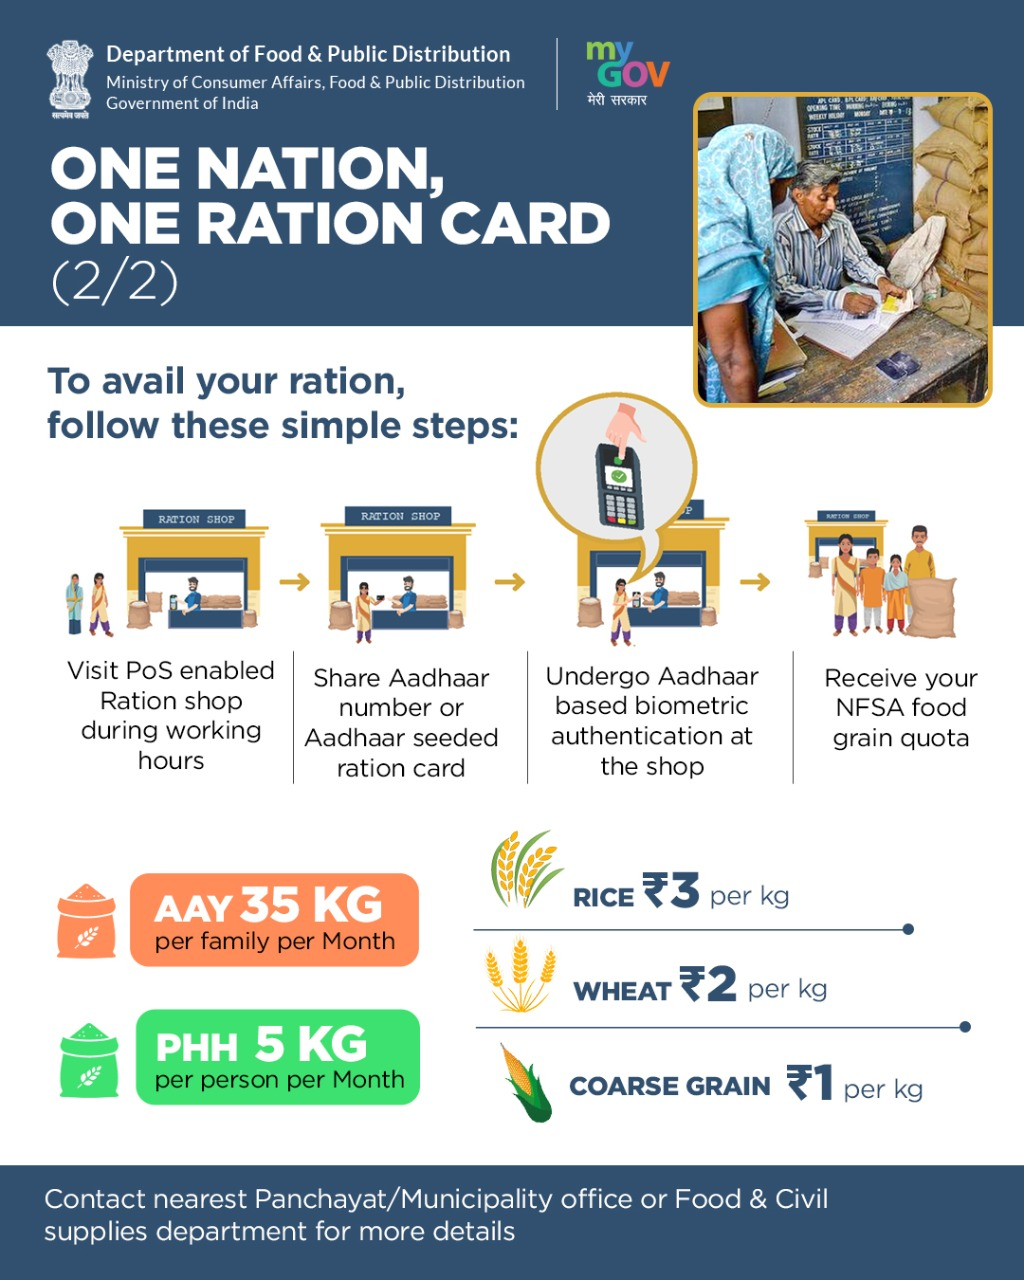 one-nation-one-ration-card-scheme-and-associated-issues